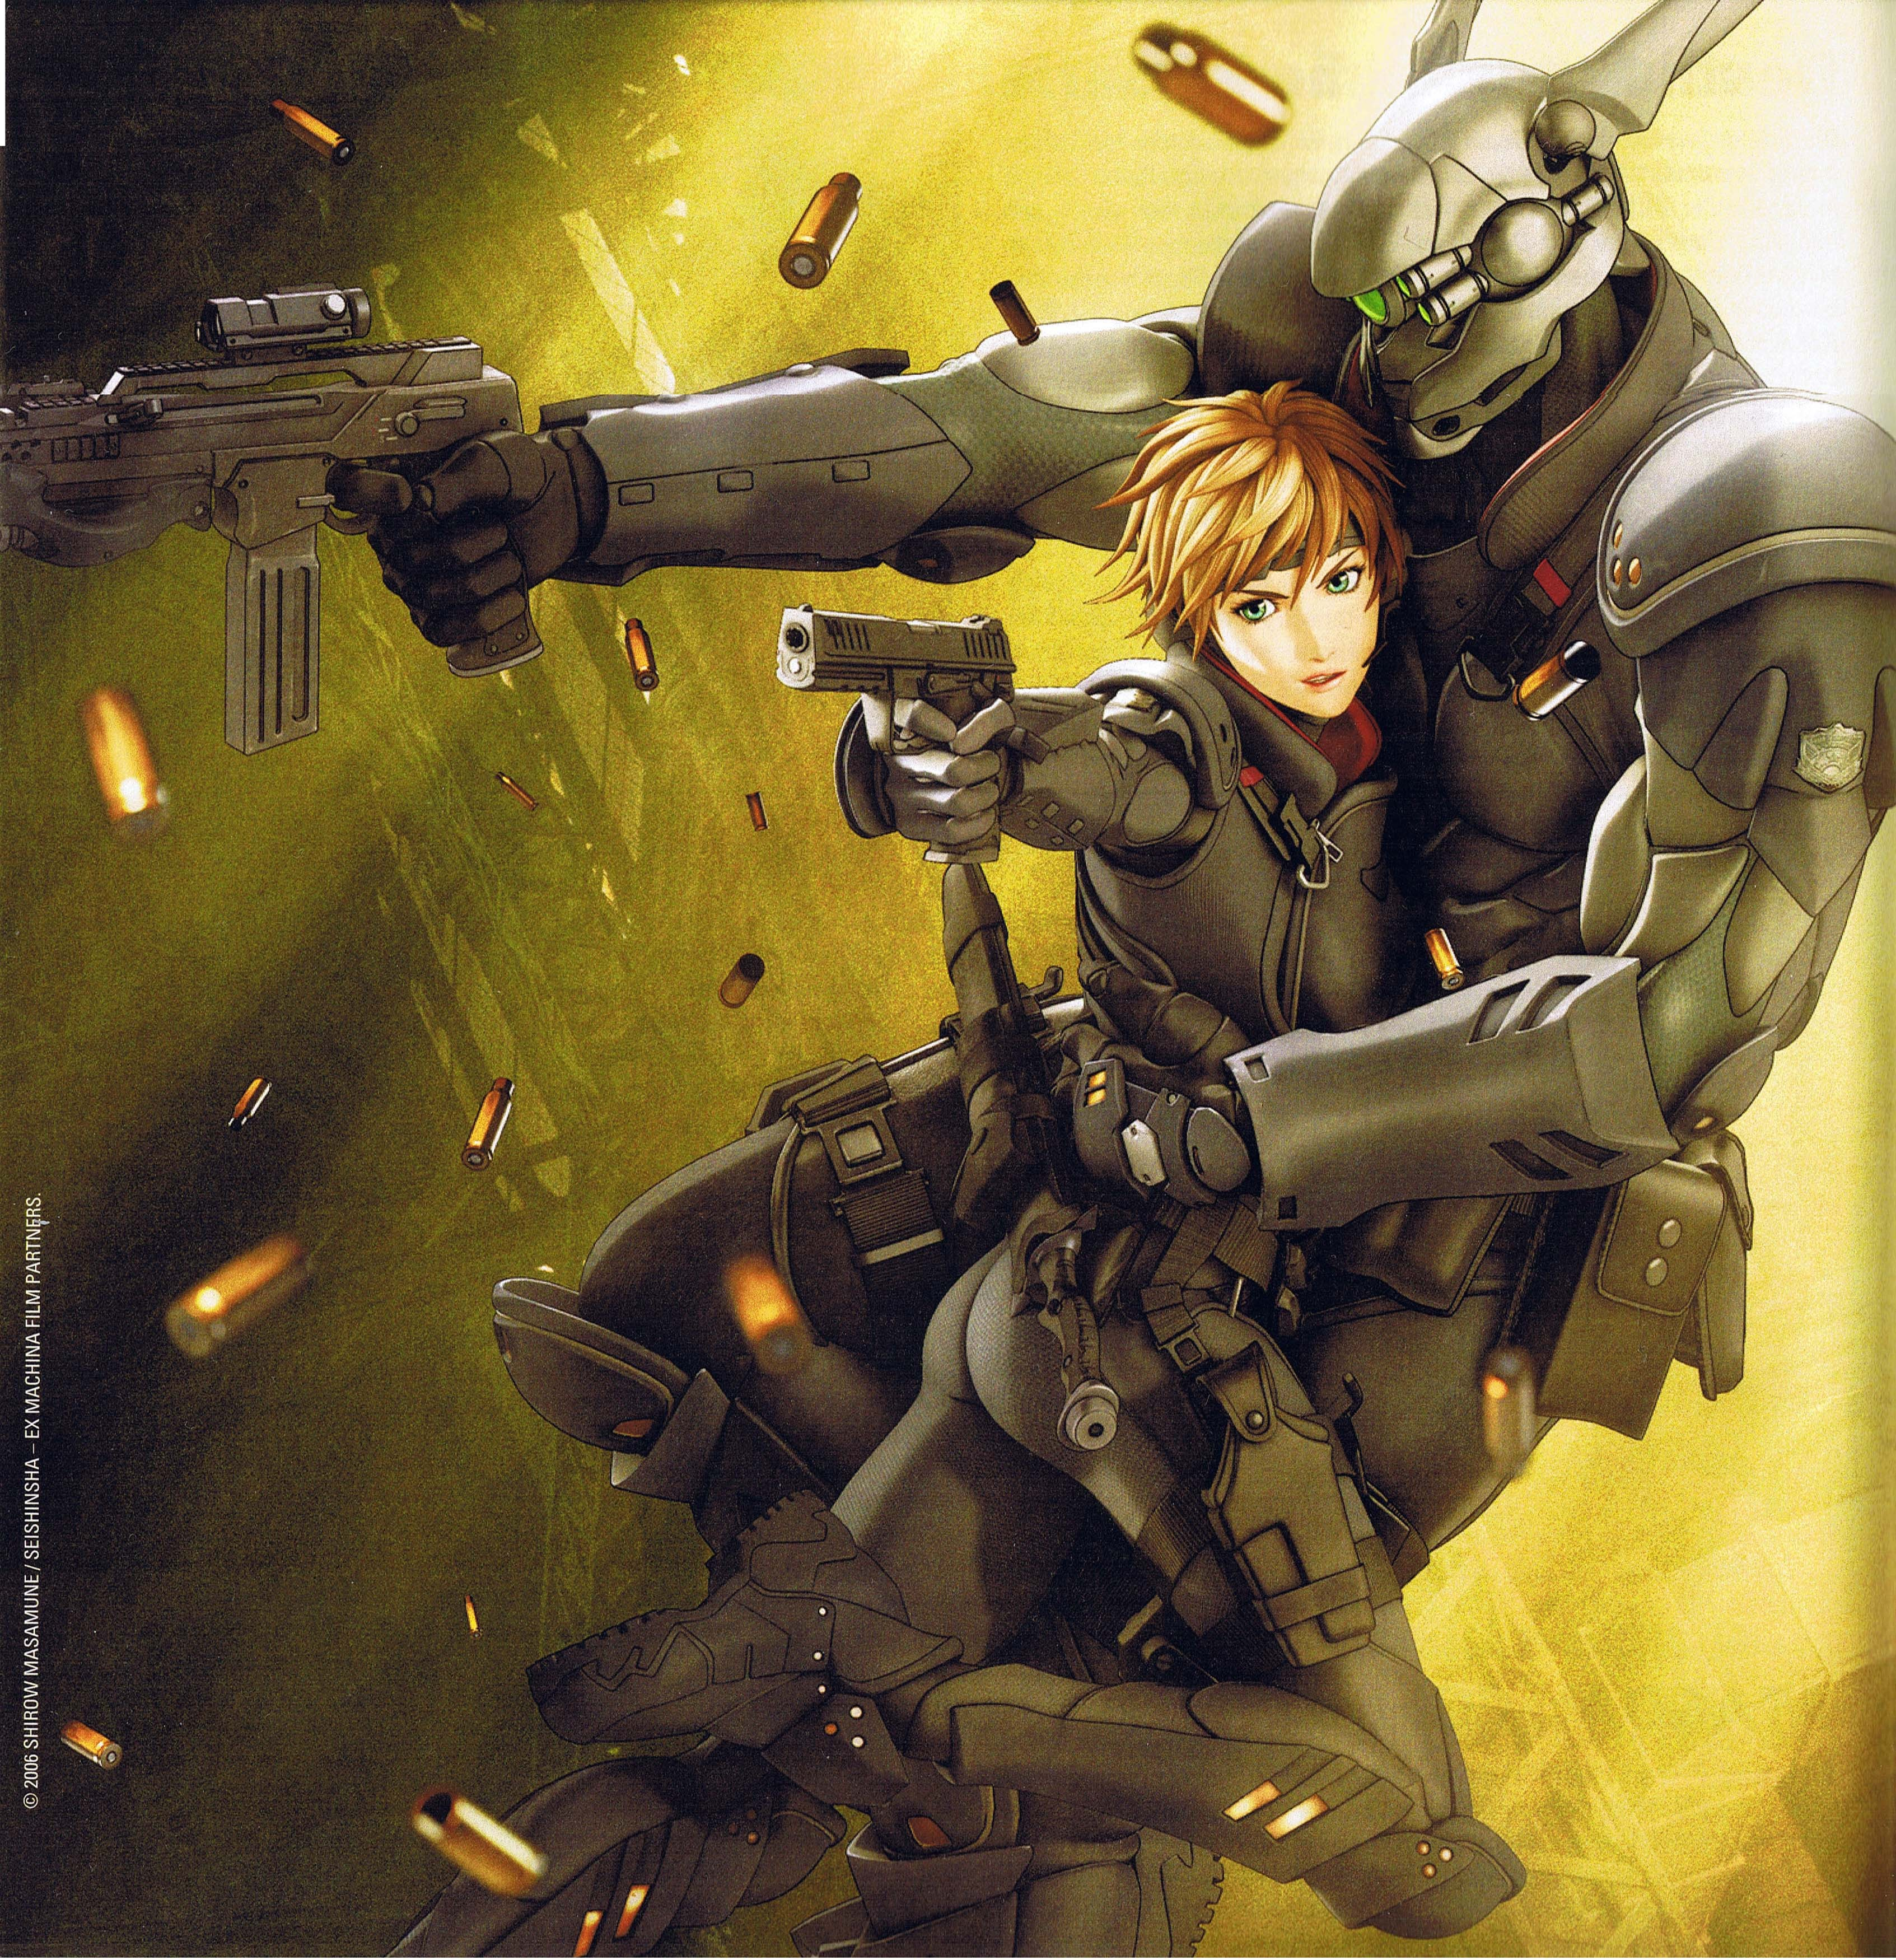 Under Armour Girl Wallpaper Briareos Hecatonchires Appleseed Zerochan Anime Image